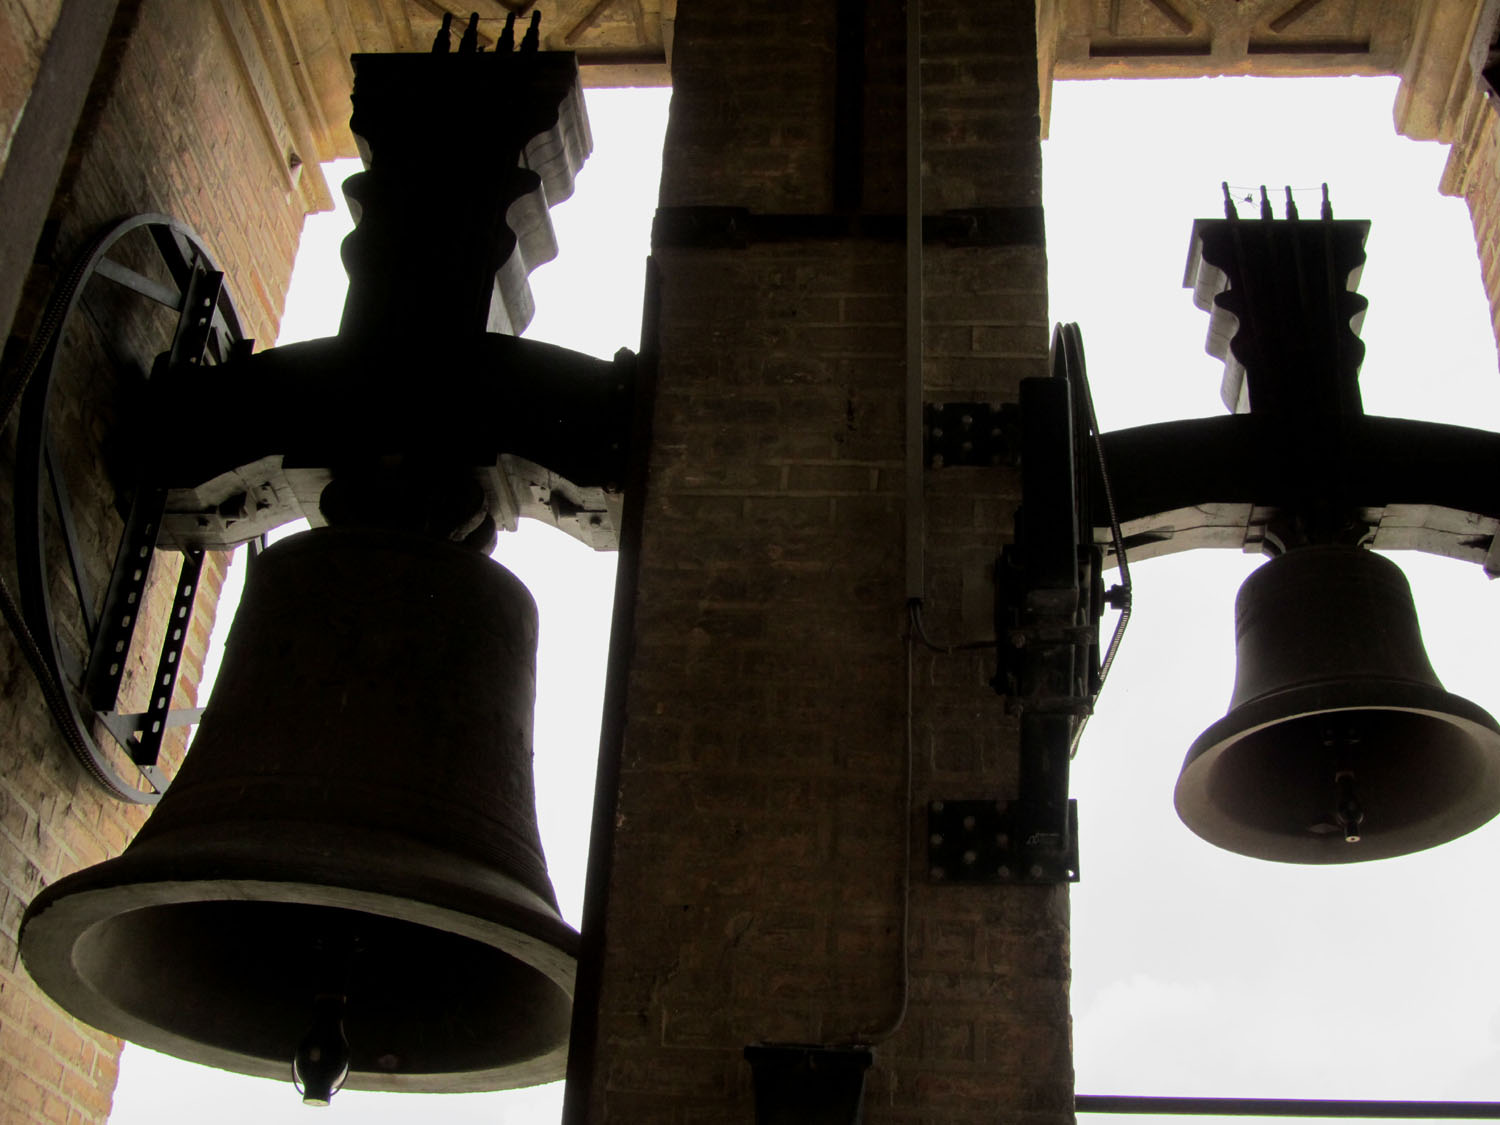 Spain-Sevilla-Cathedral-Bells